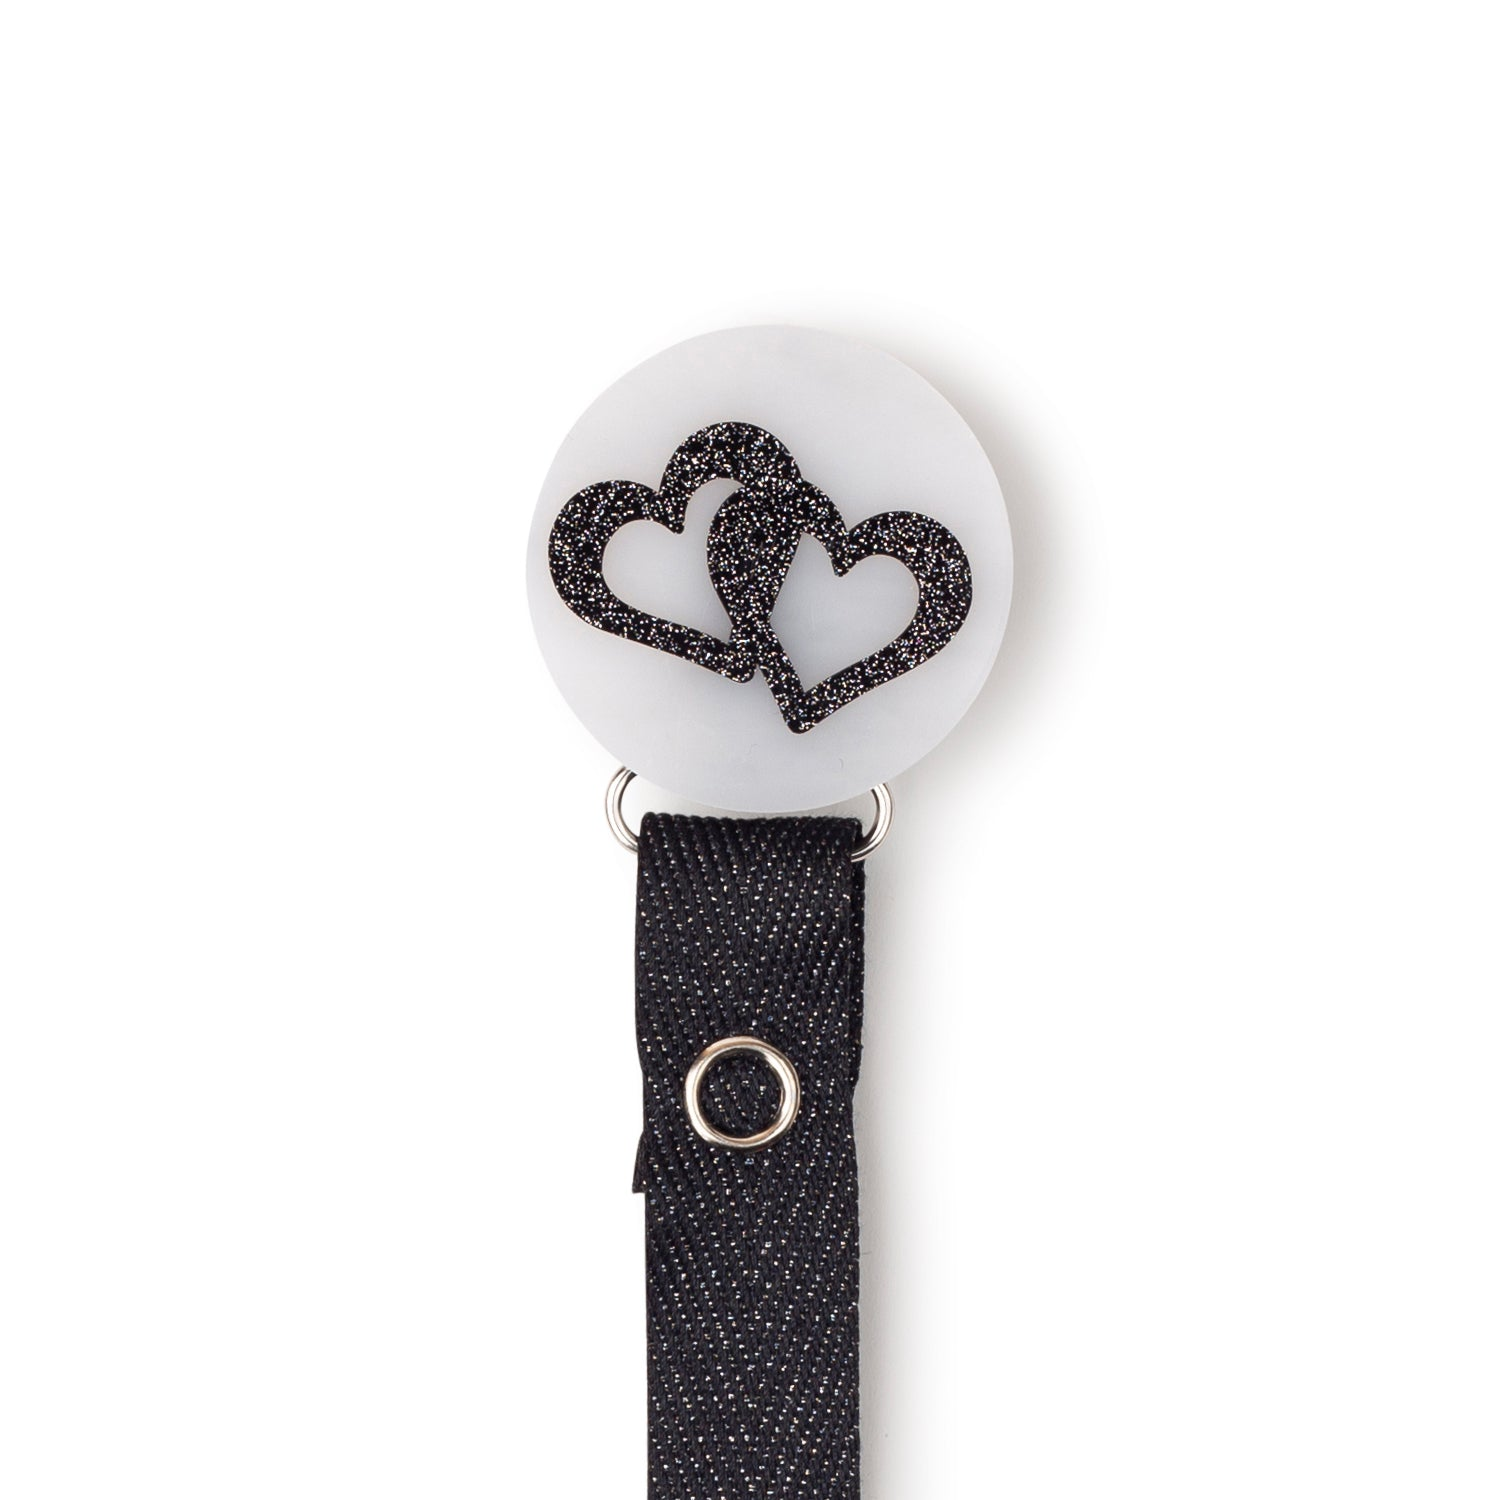 Classy Paci Marble black white onyx heart  circle clip with BIBS pacifier GIFT SET